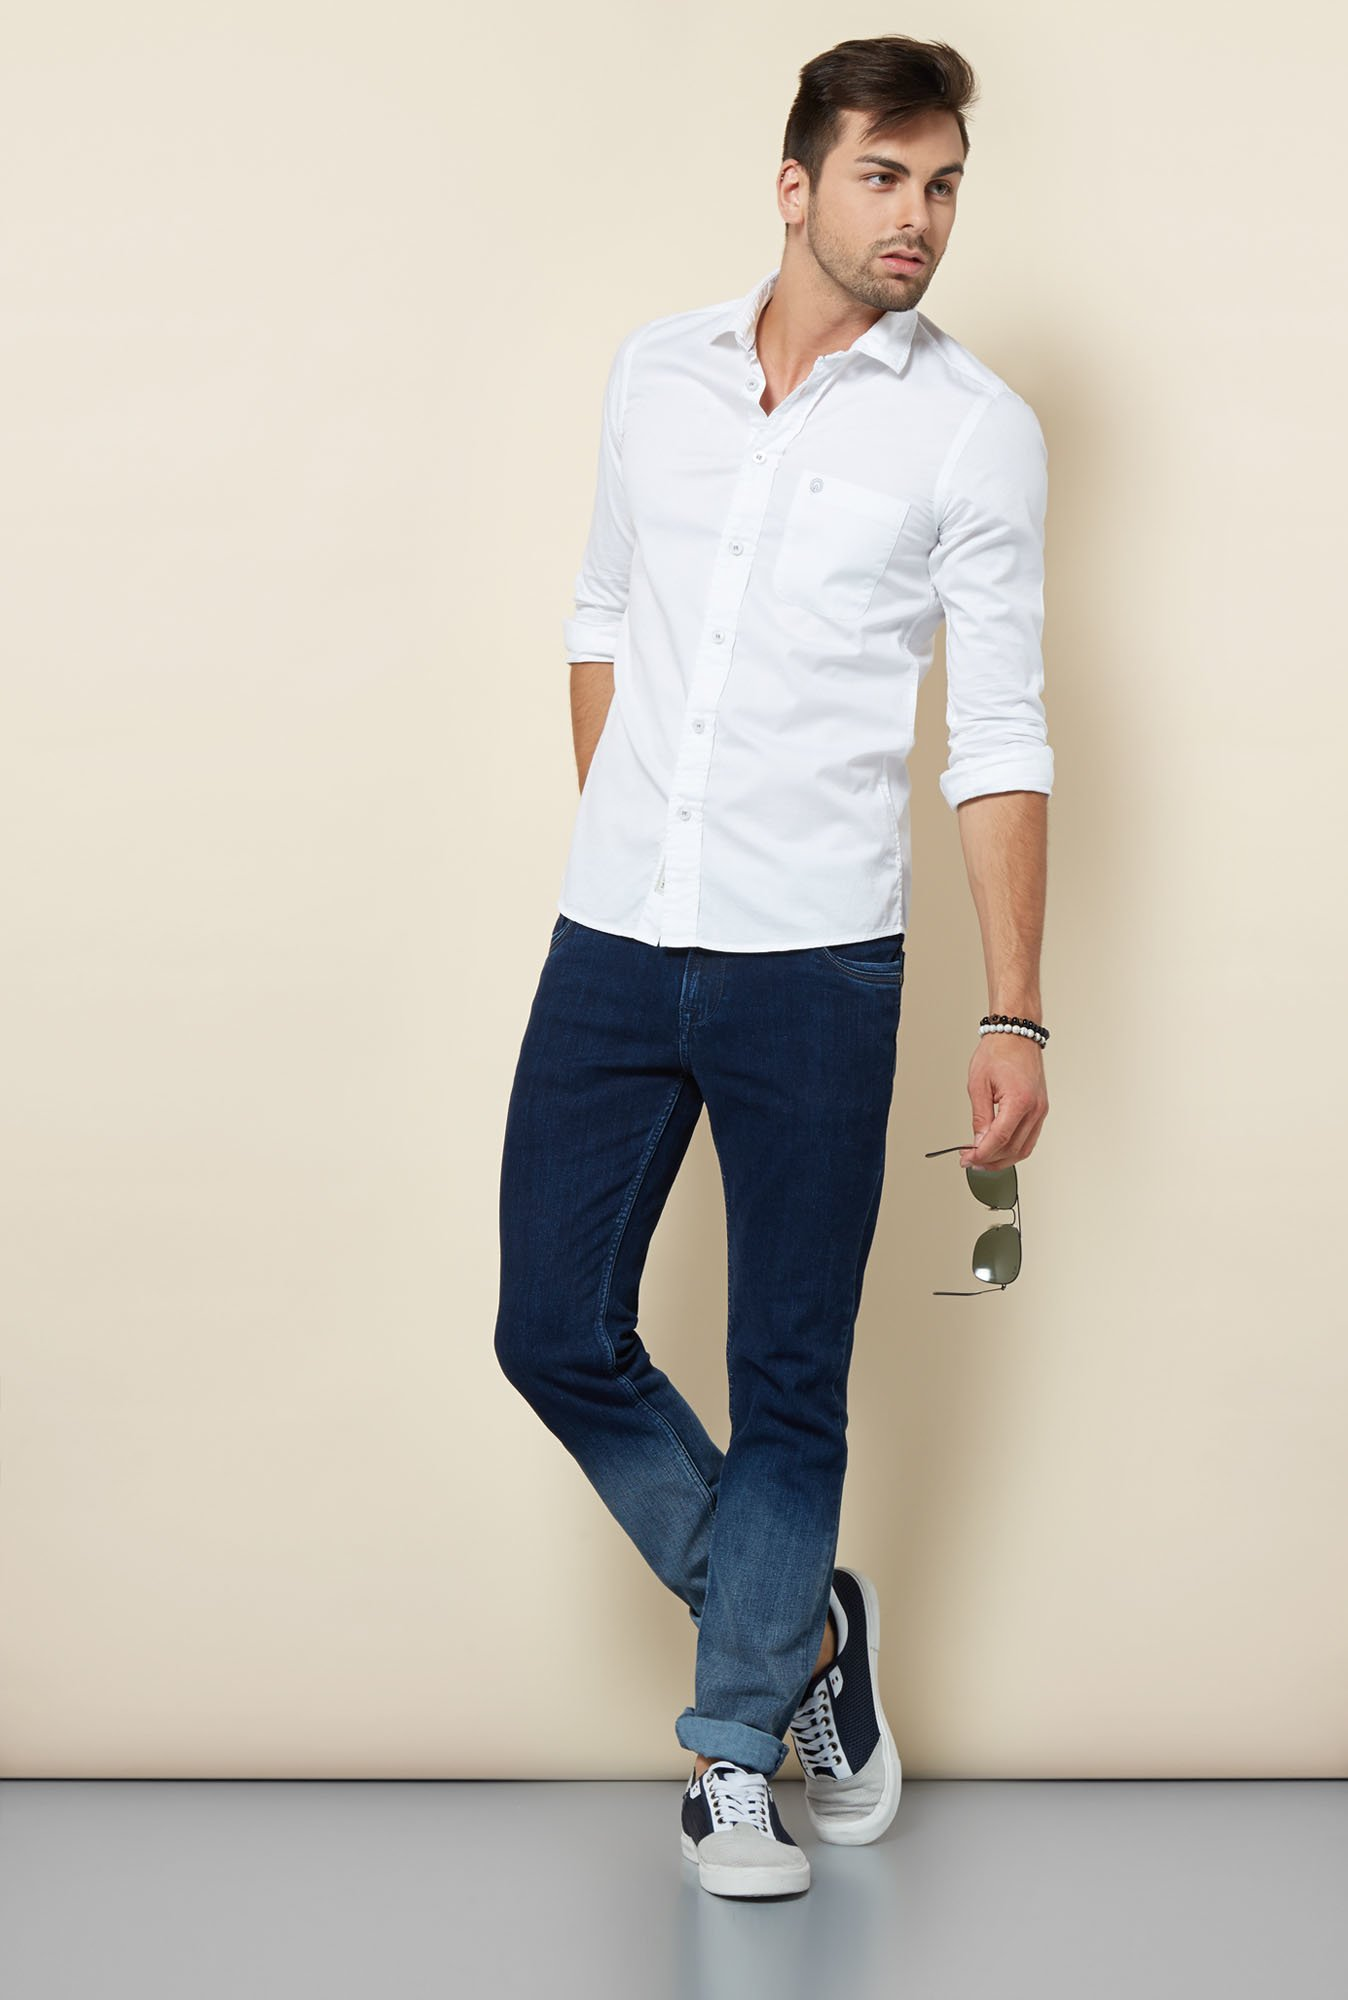 Integriti White Solid Slim Fit Shirt